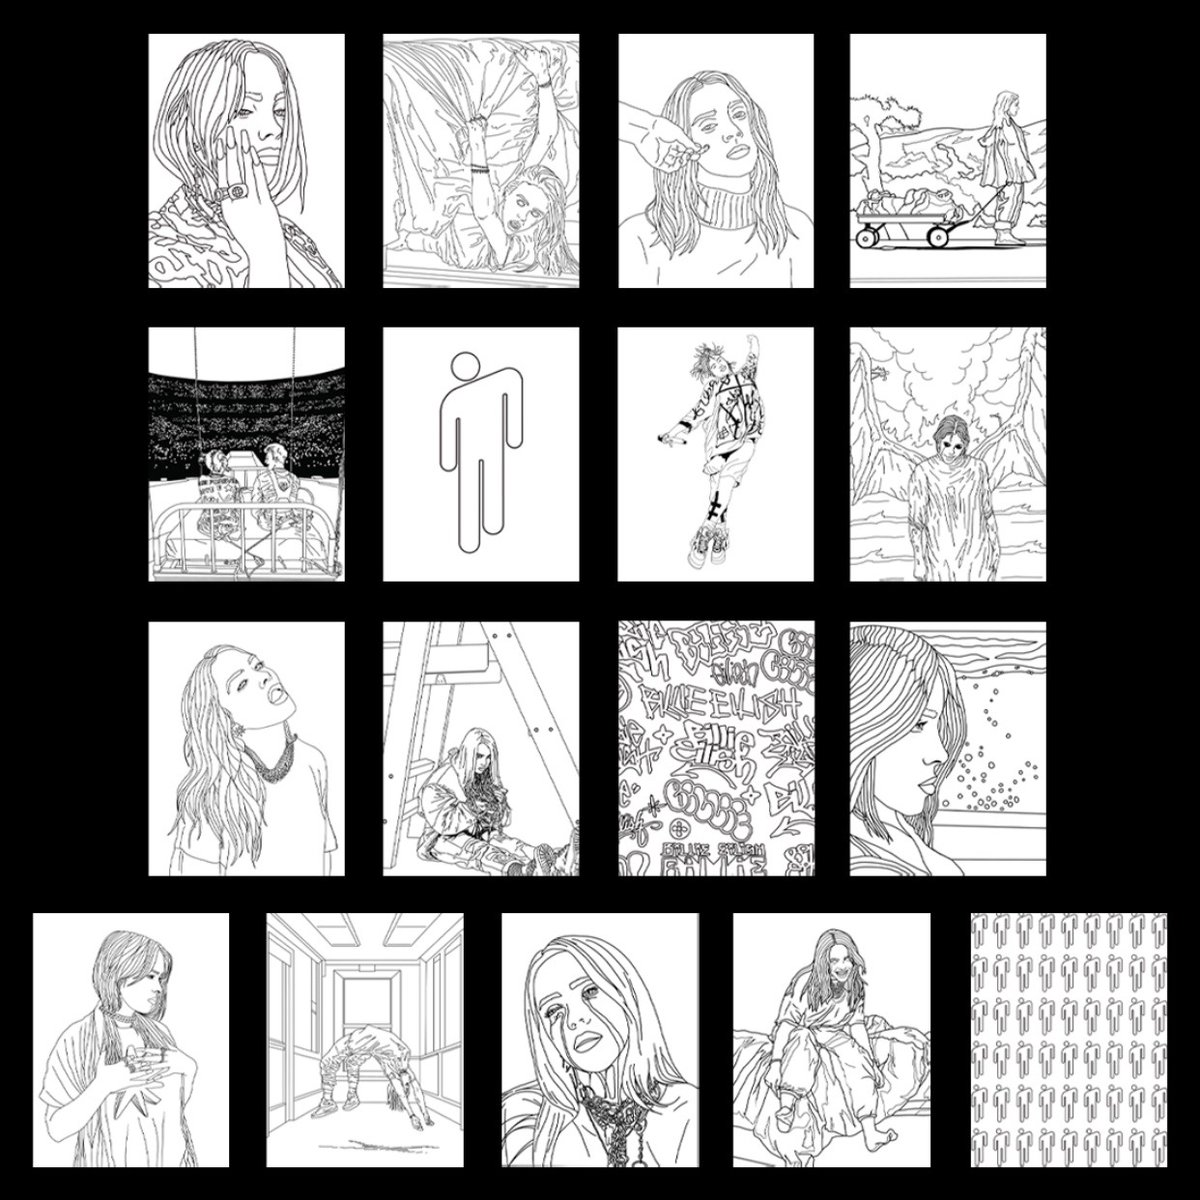 A digital version of the Billie Eilish Coloring Book is available now in Billie's official store. You can choose your own price with all proceeds going to @UNICEF.